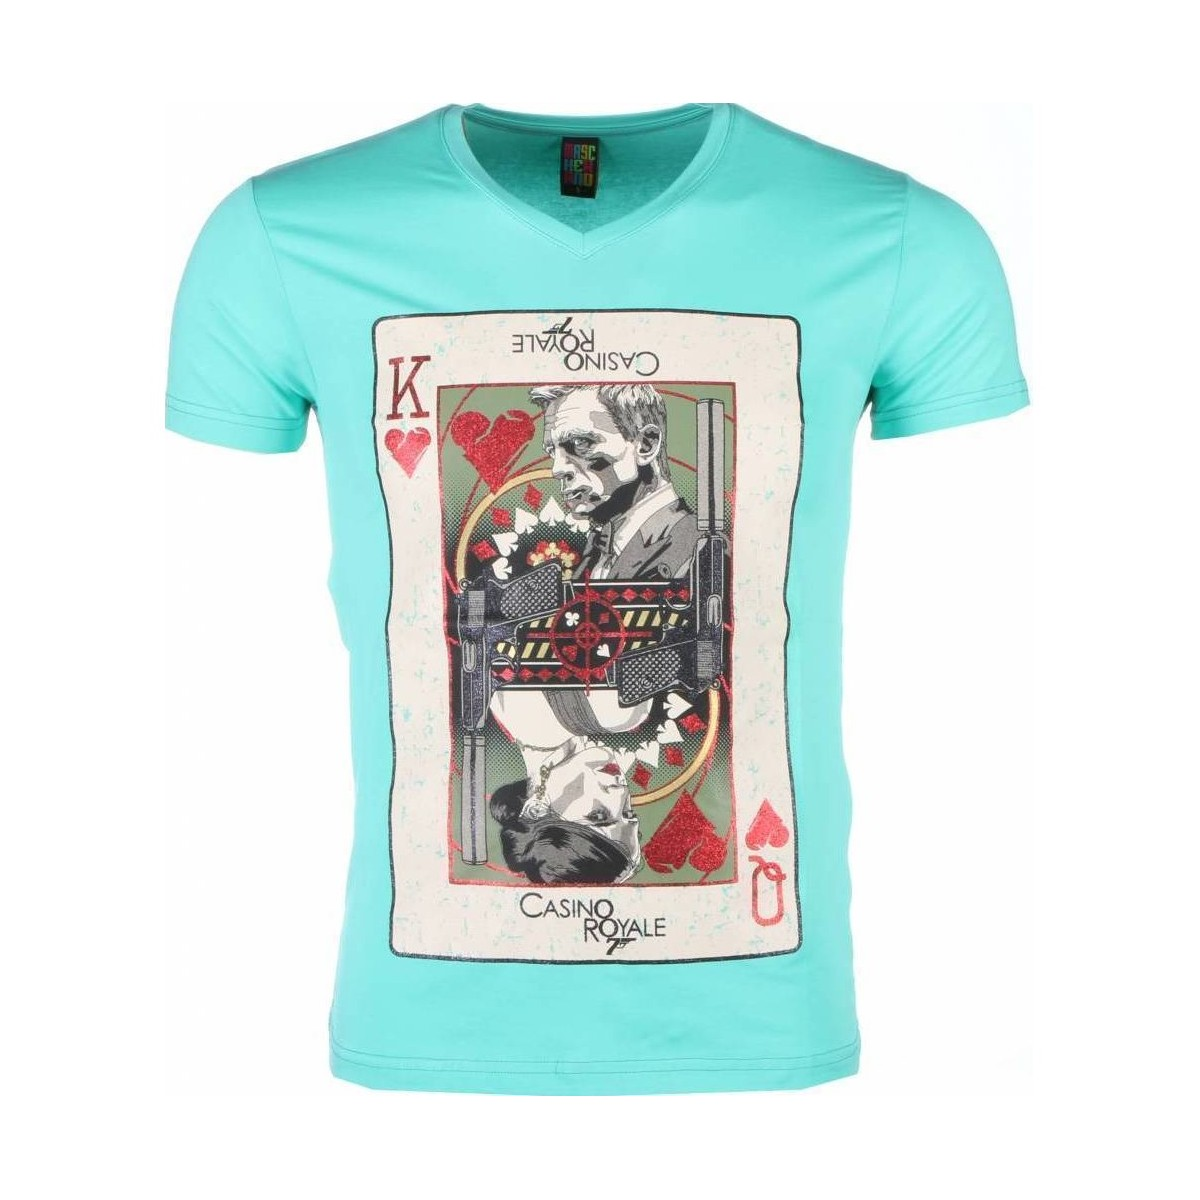 james bond shirt casino royale